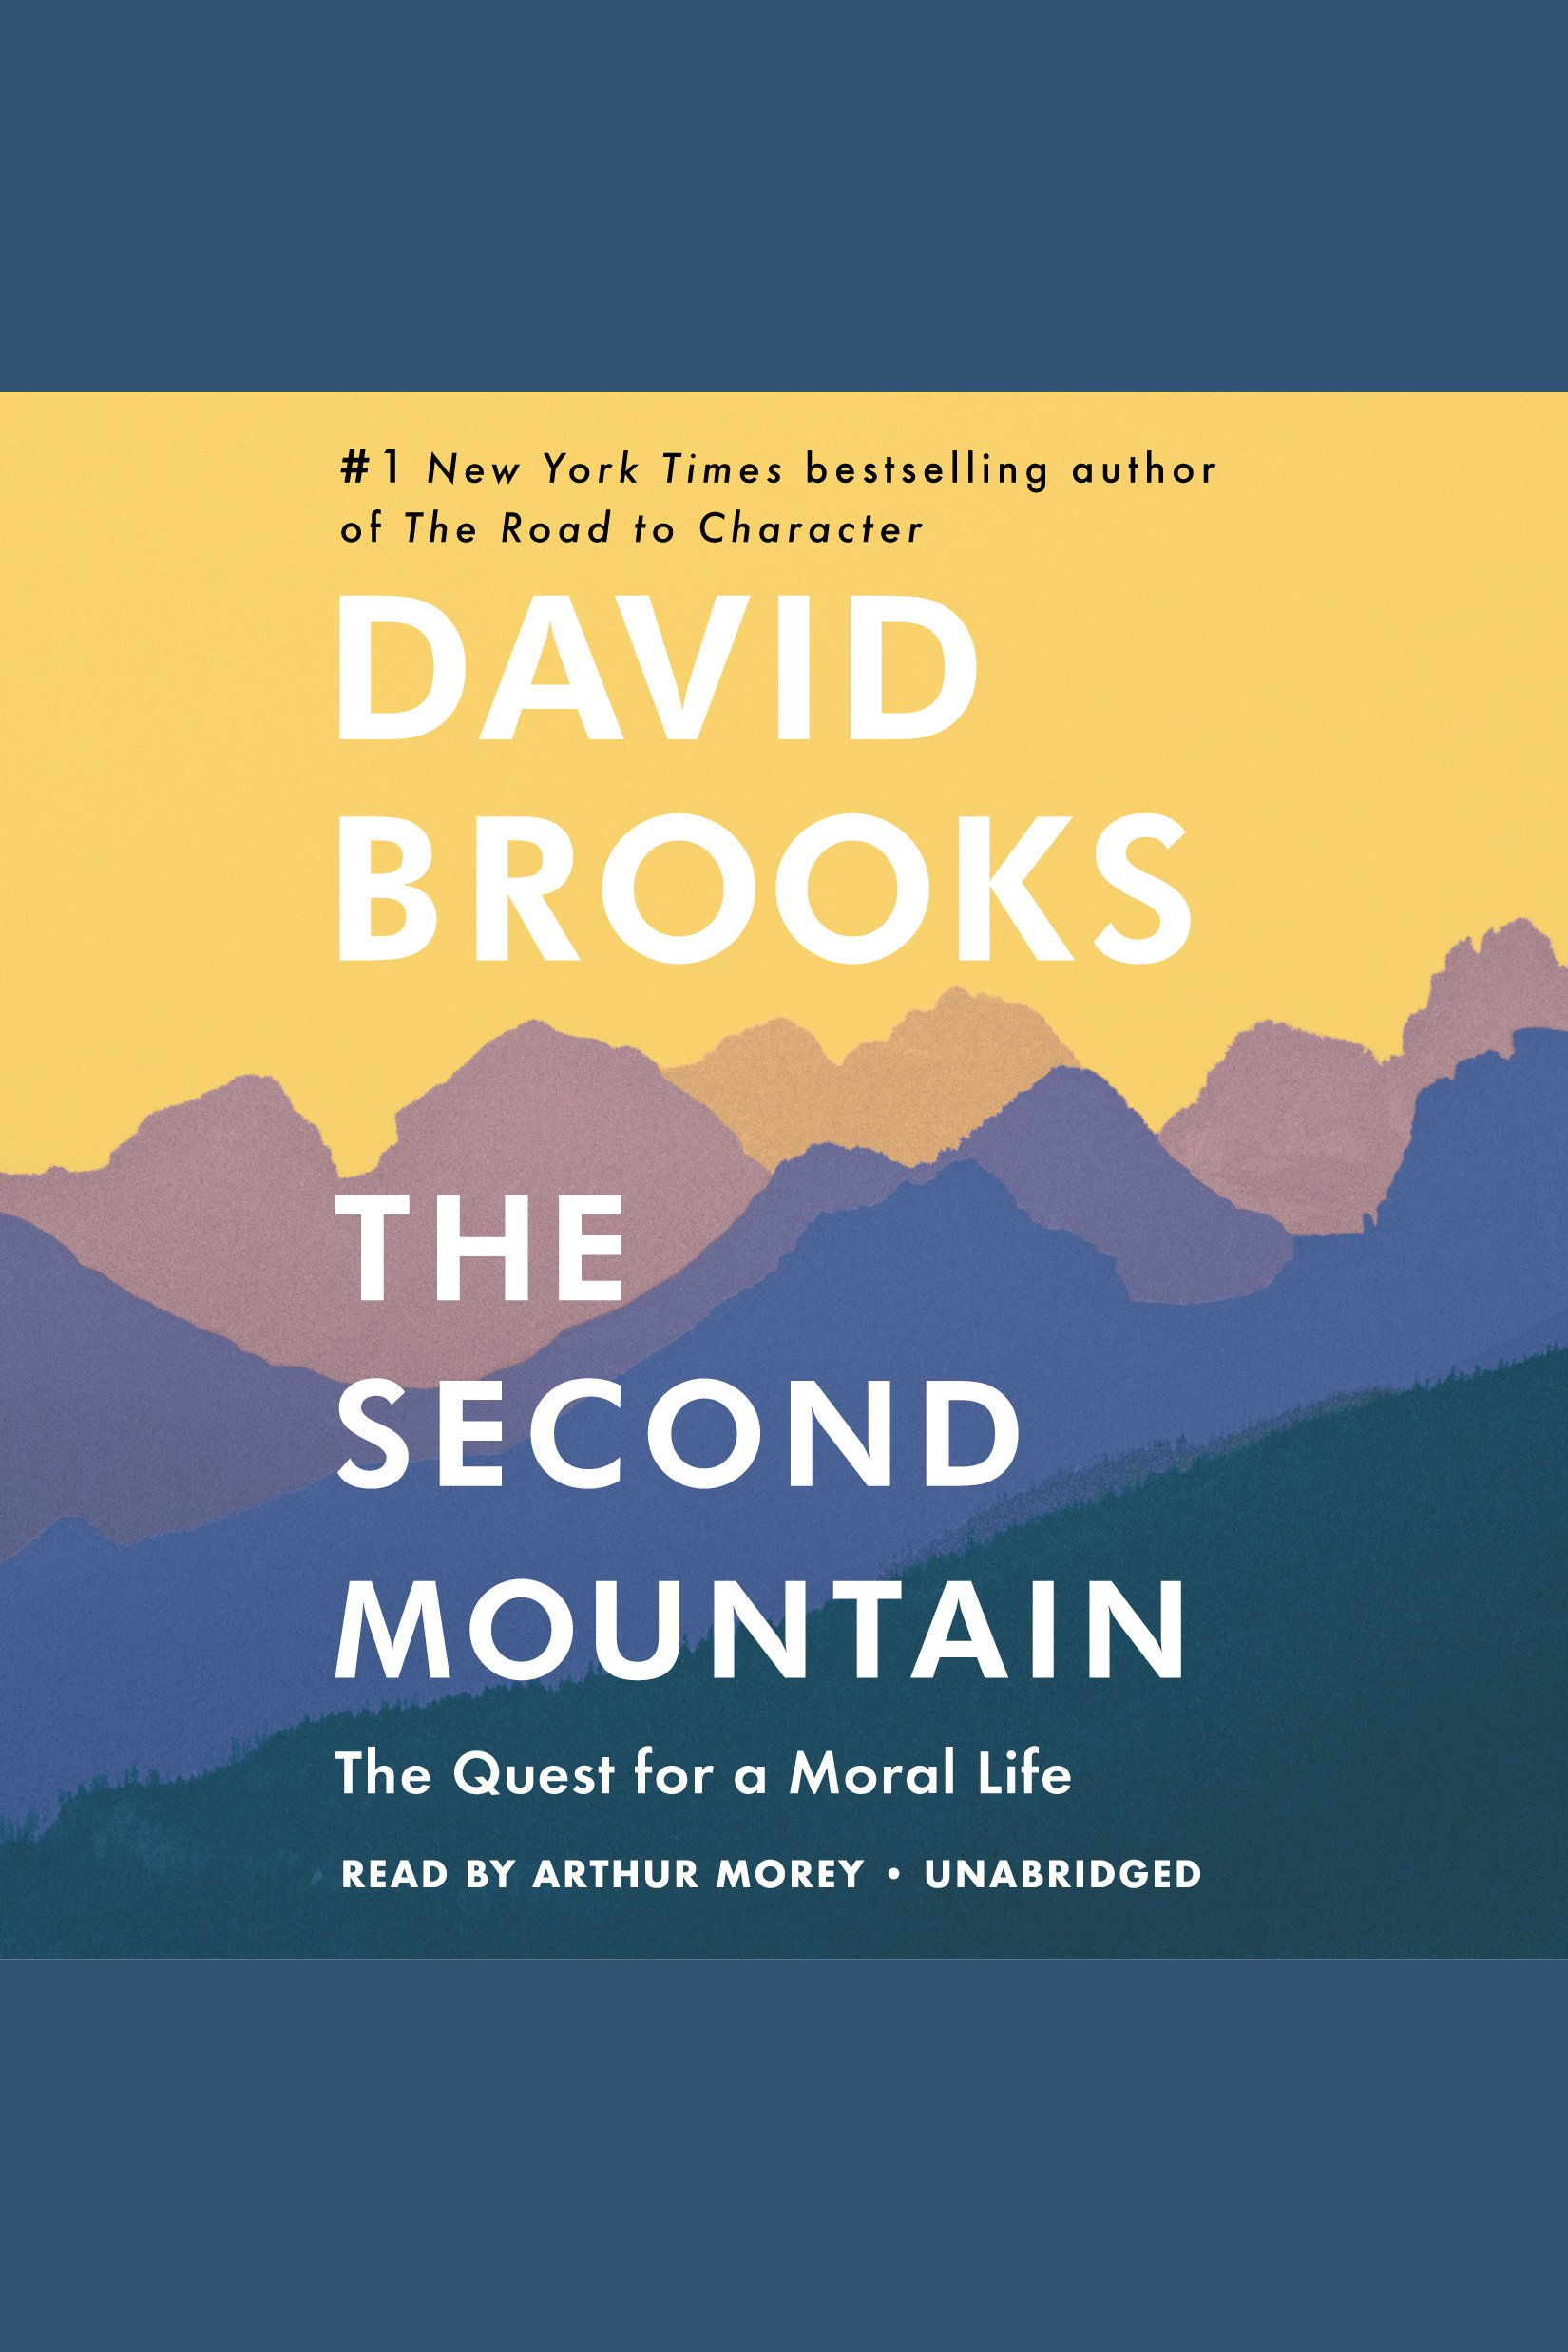 Second Mountain, The The Quest for a Moral Life